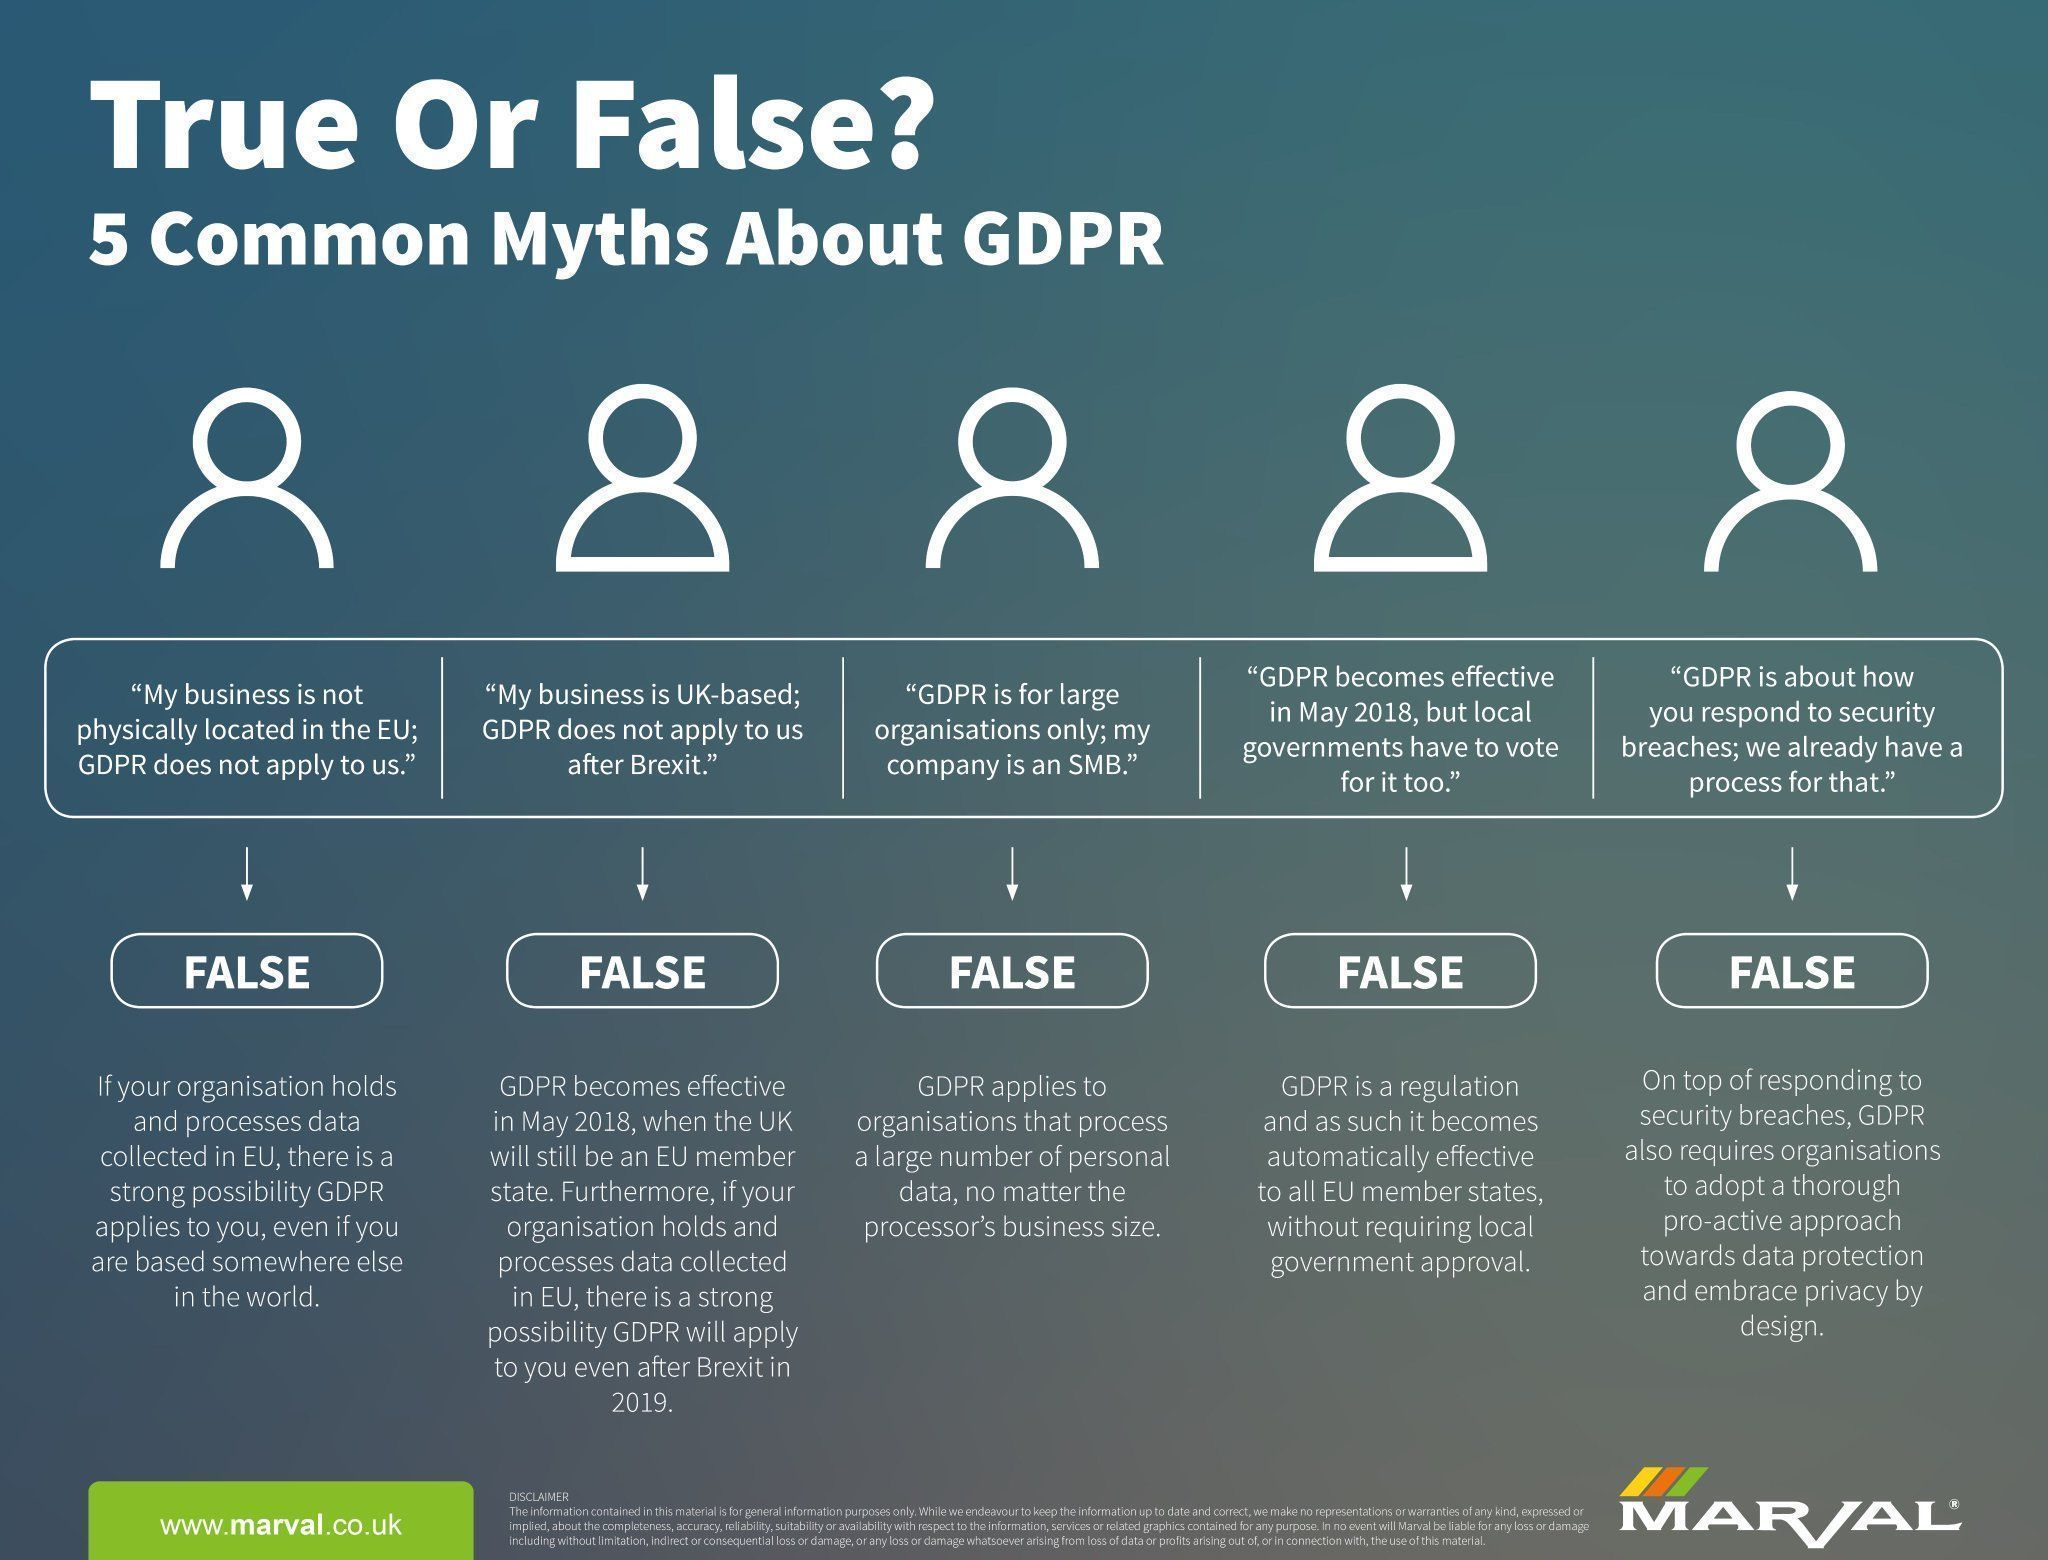 True or False? 5 Common Myths About #GDPR {Infographic}  #CyberSecurity #infosec #Security @fisher85m #SMB #Education #databreach #privacy #CISO @MarvalSoftware https://t.co/RGekWScSka